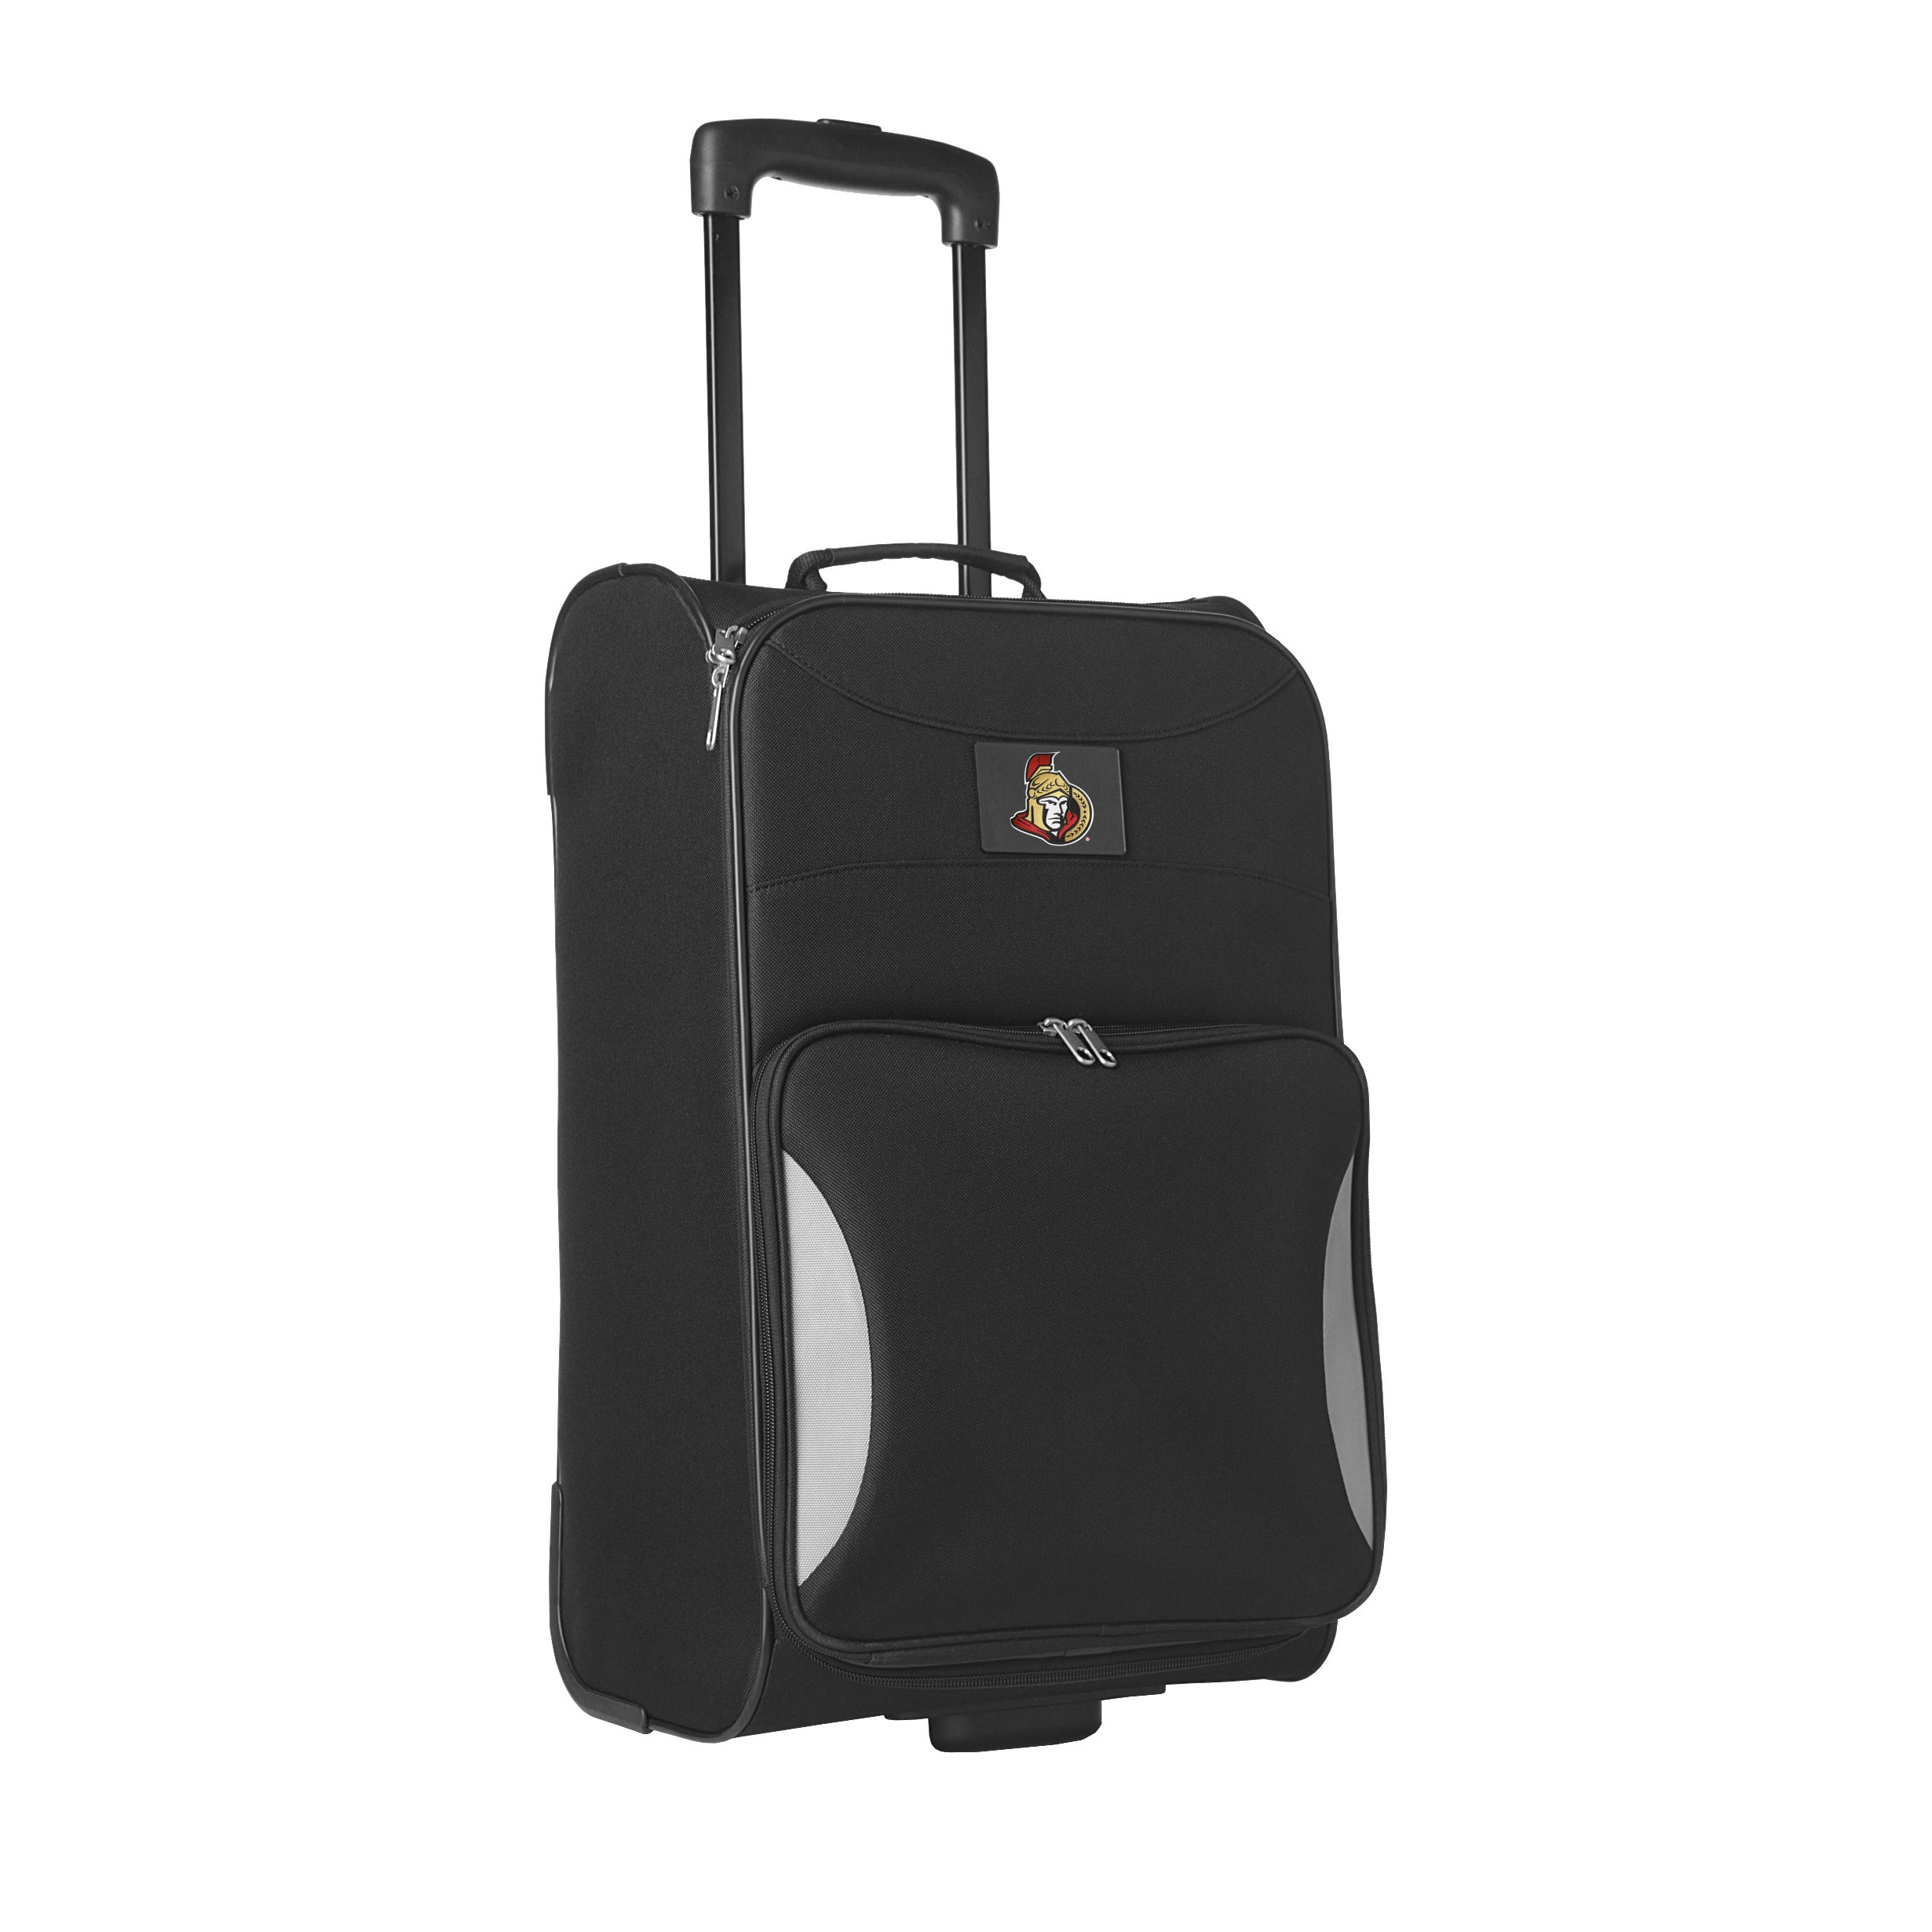 cac612ac0 Shop Denco Sports Steadfast 18-inch Ottawa Senators Black Rolling Carry-on  Upright Suitcase - Free Shipping Today - Overstock - 14418262